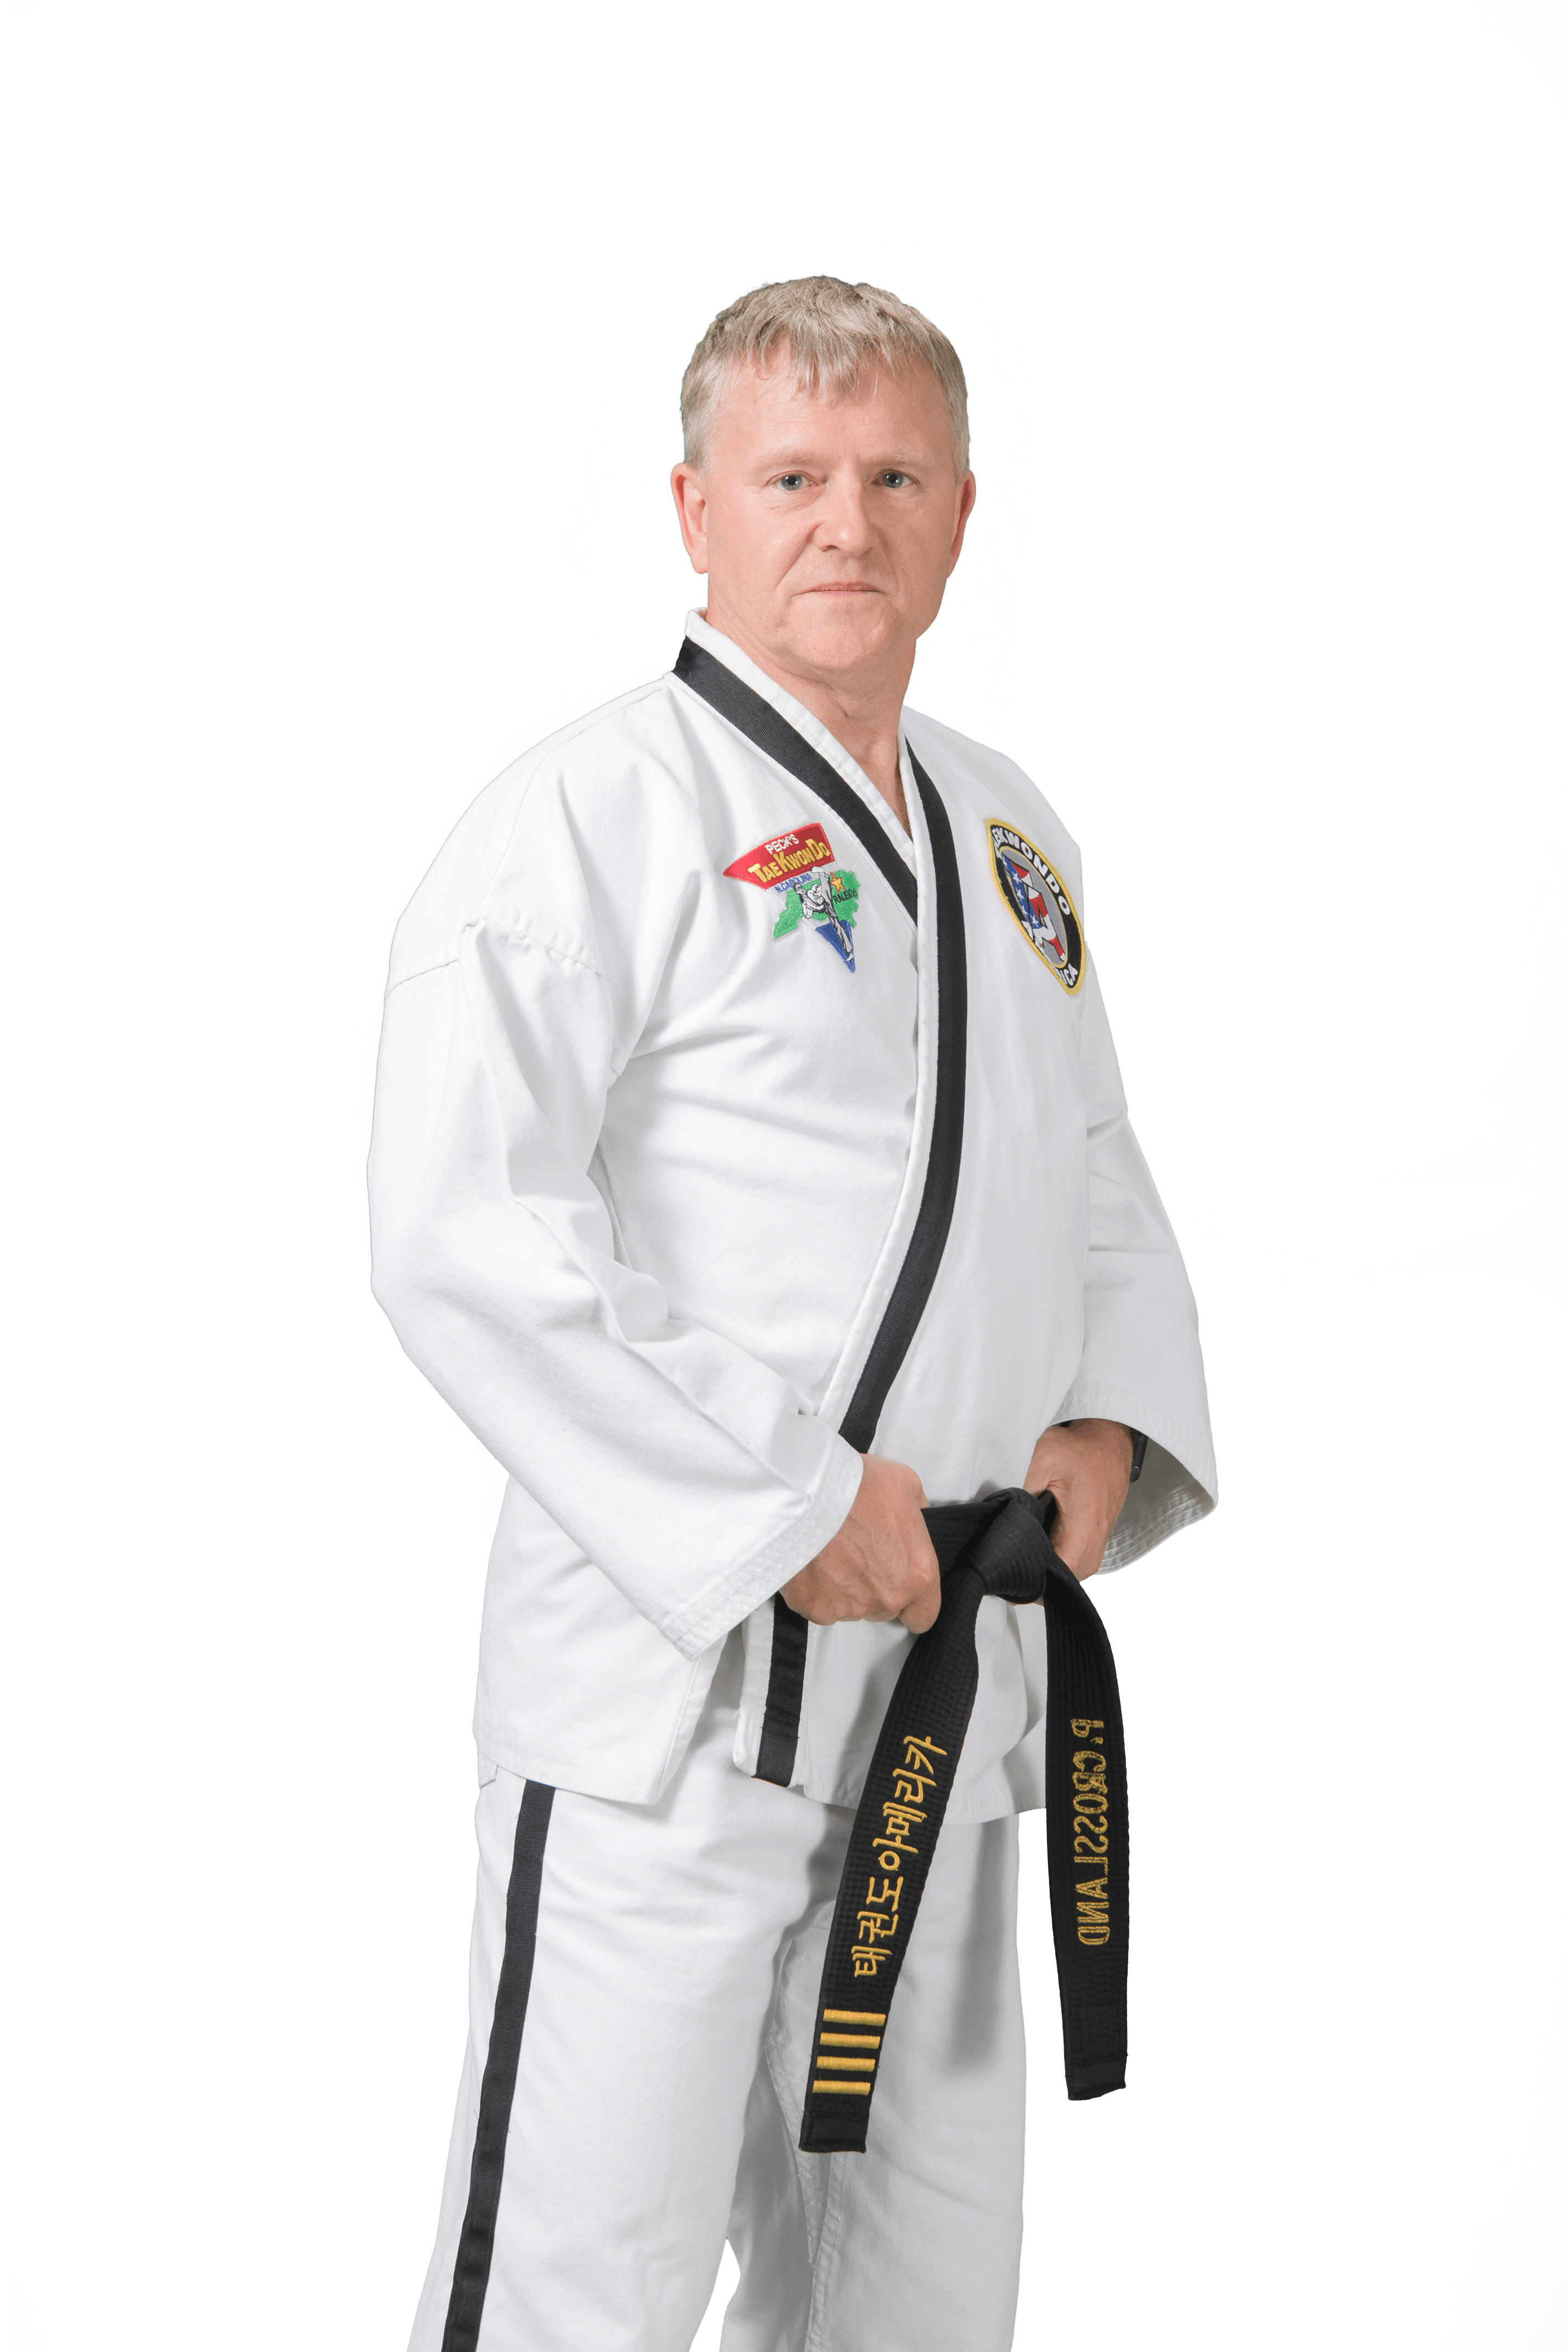 Paul Crossland in Raleigh - Peck's Taekwondo America